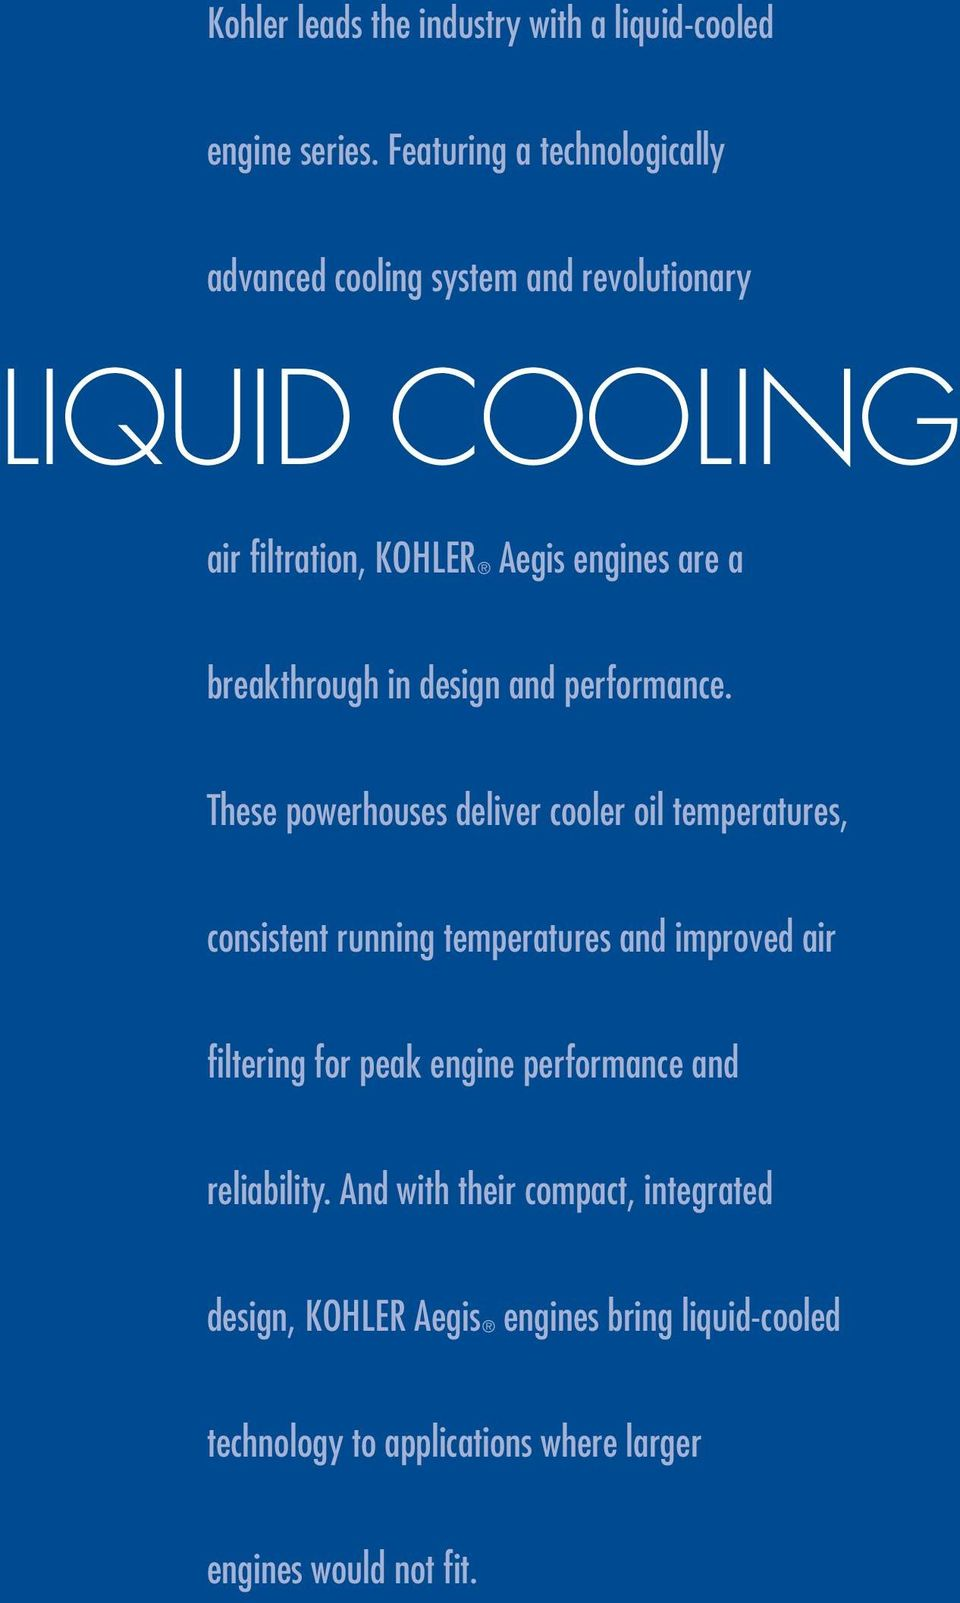 The next wave in liquid-cooled technology  KOHLER Aegis HP